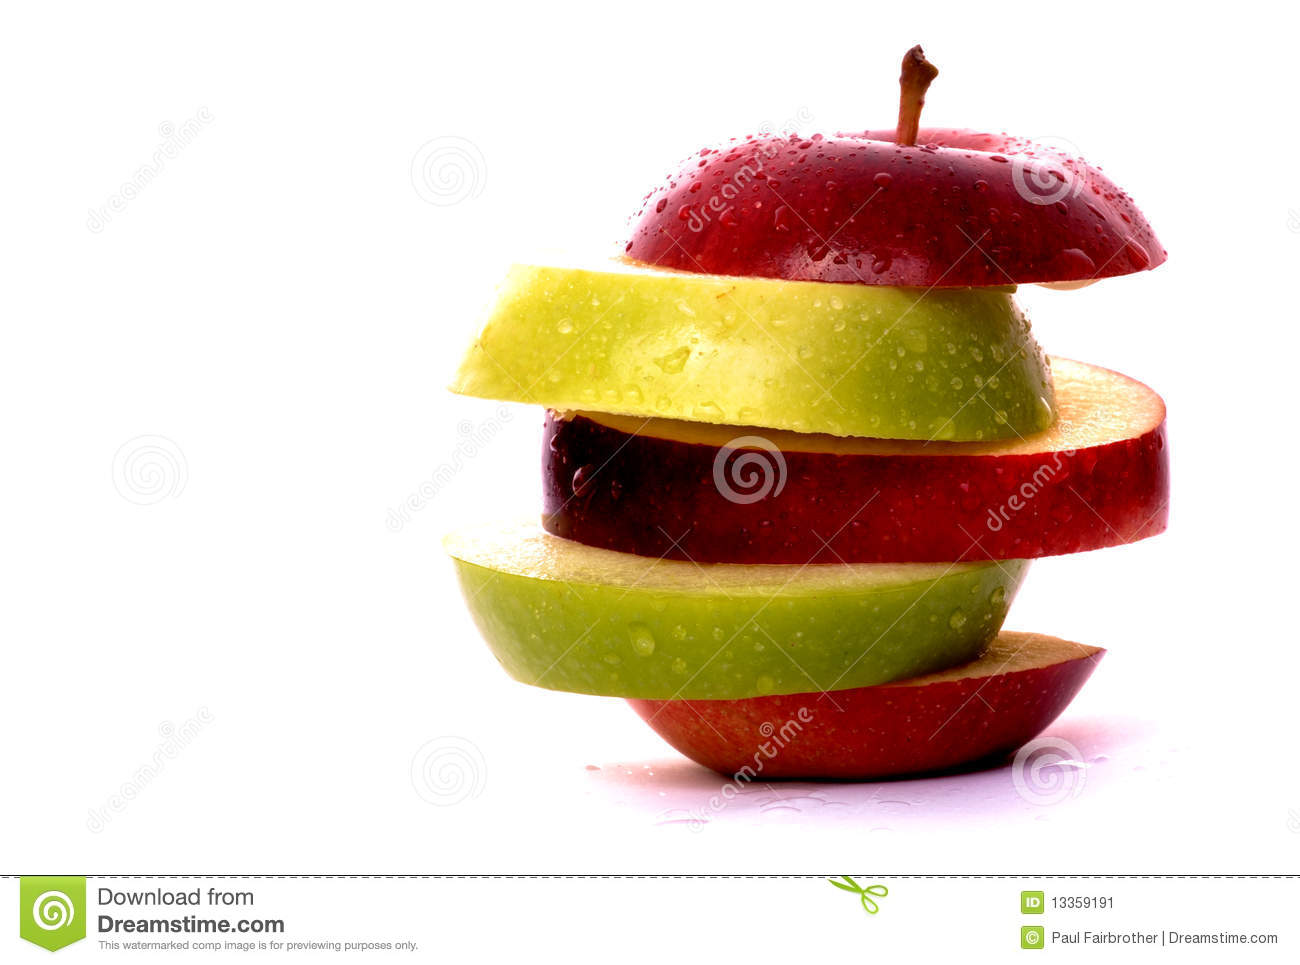 Apple slices in red and green